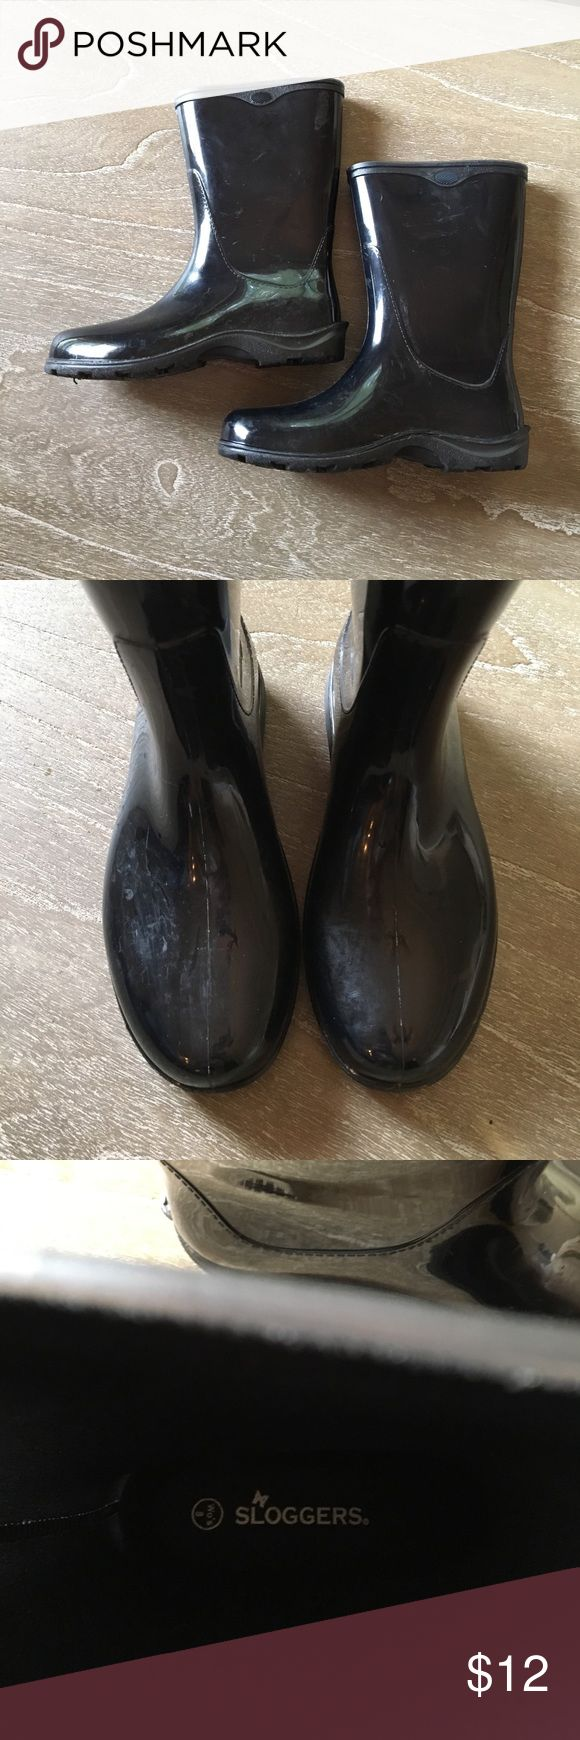 Sloggers Rain Boots Black Sloggers rain boots in size women's 8-9. Only worn one weekend and in excellent condition. Tread like new. Note some slight marks on outer boot which don't effect functionality. sloggers Shoes Winter & Rain Boots